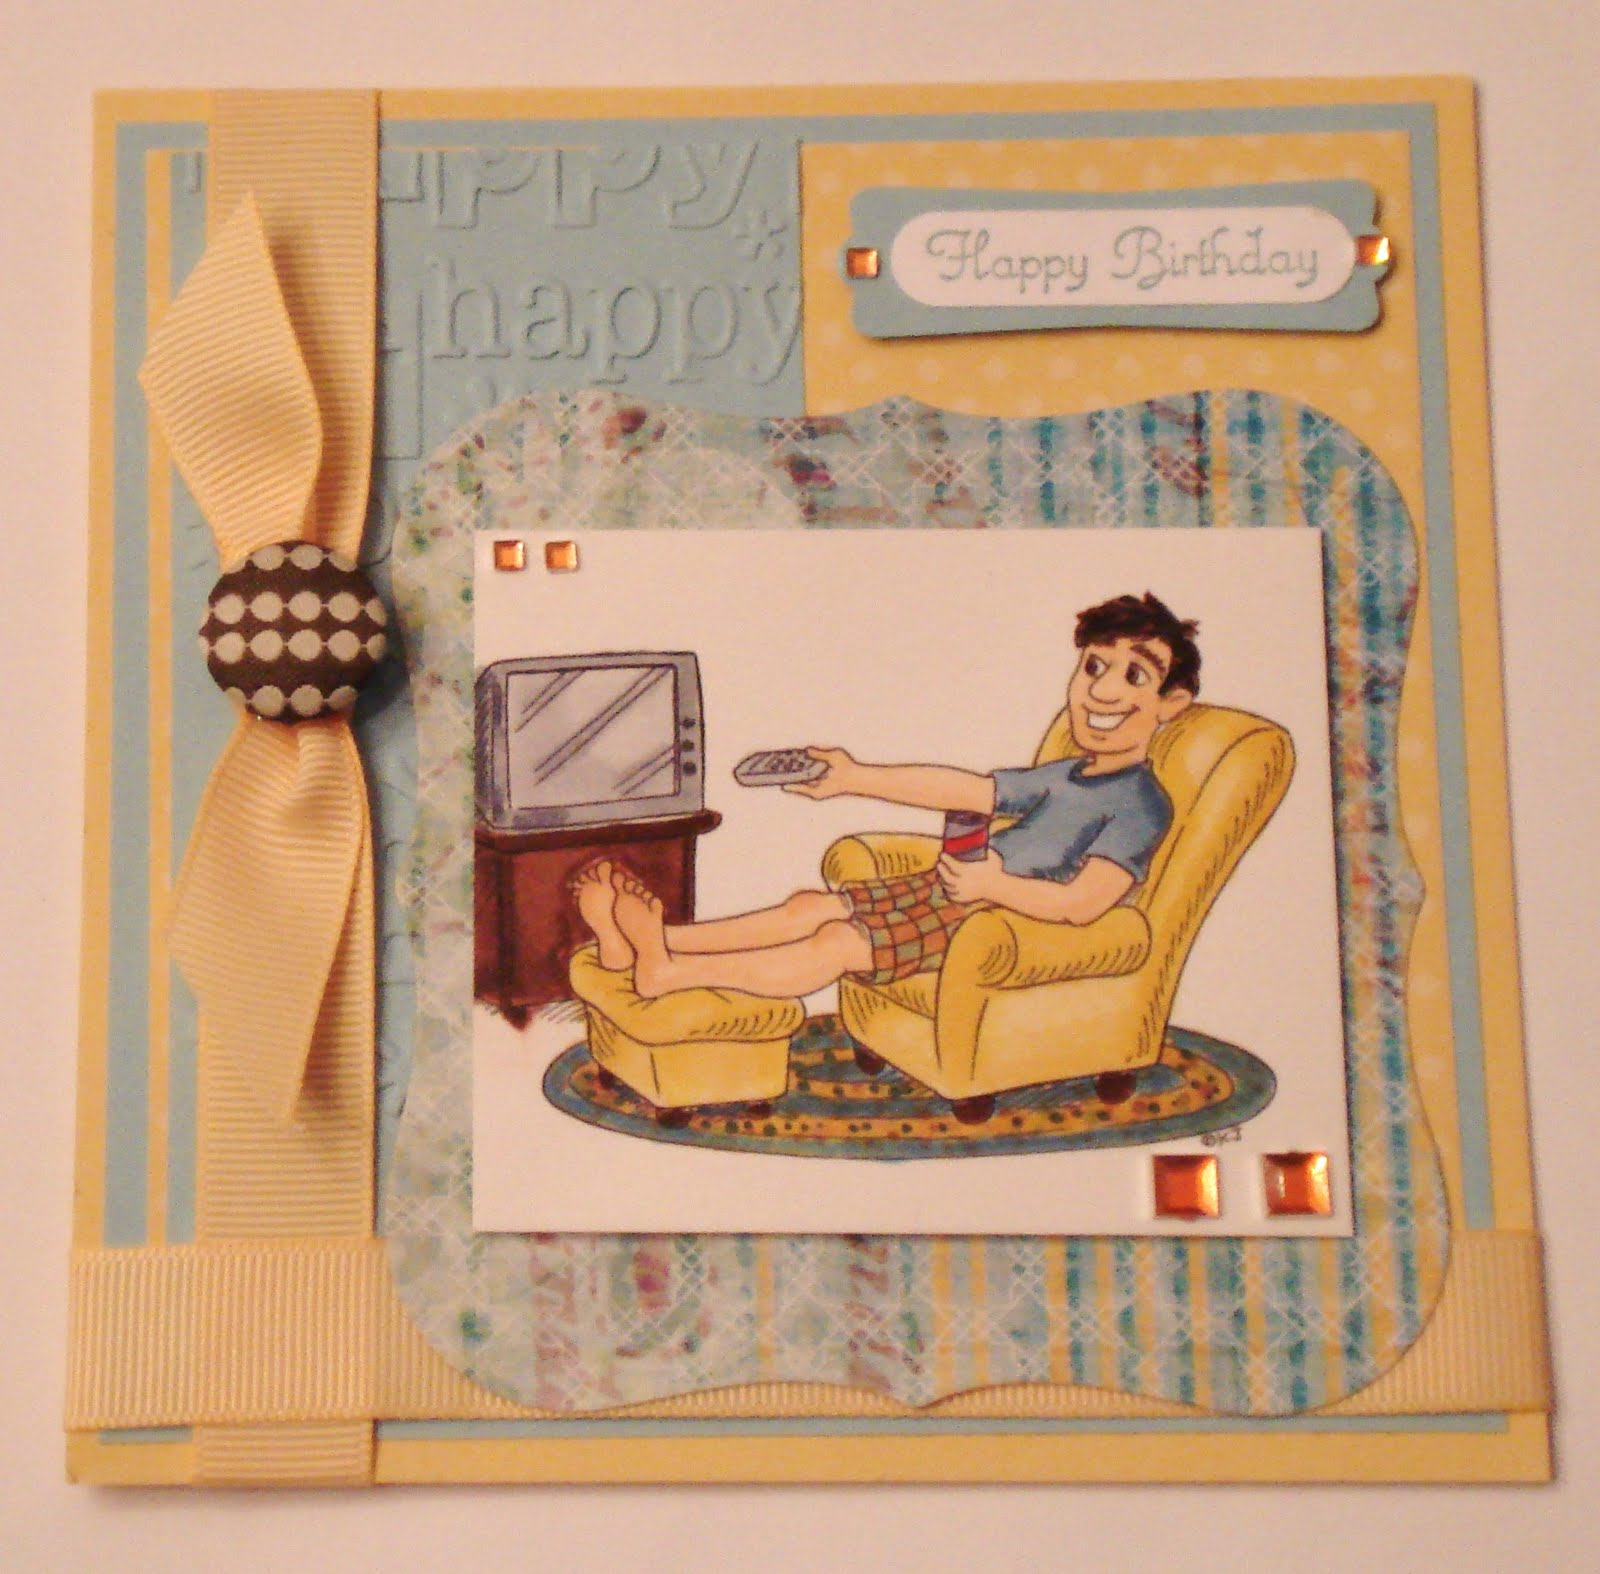 ink and lace with sheryl cauble birthday card for my son in law, Birthday card